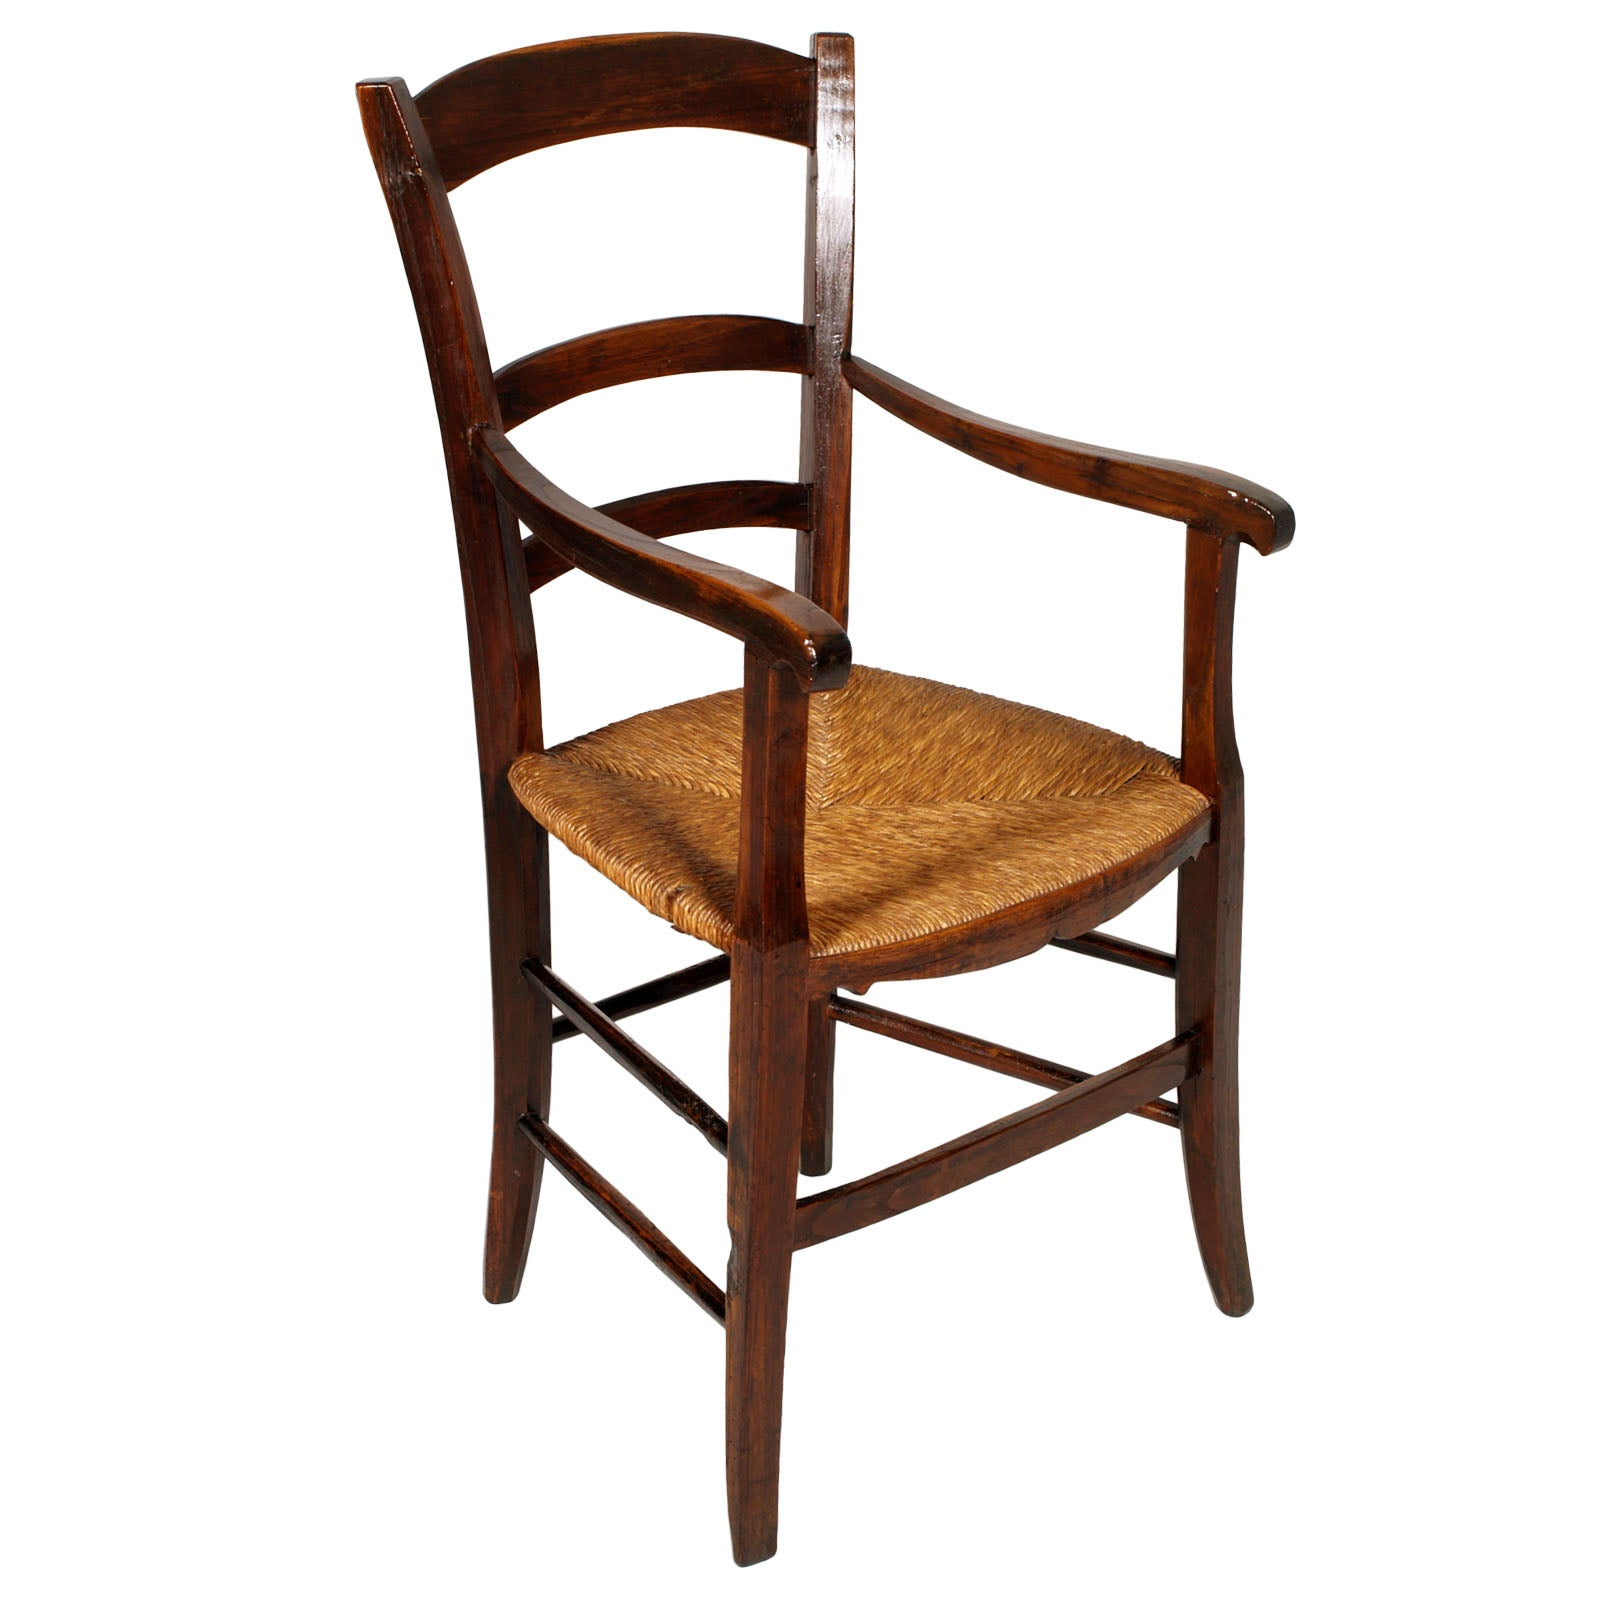 Italy 18th Century Country Rustic Armchair, Chestnut Wood Hand Cut and Restored